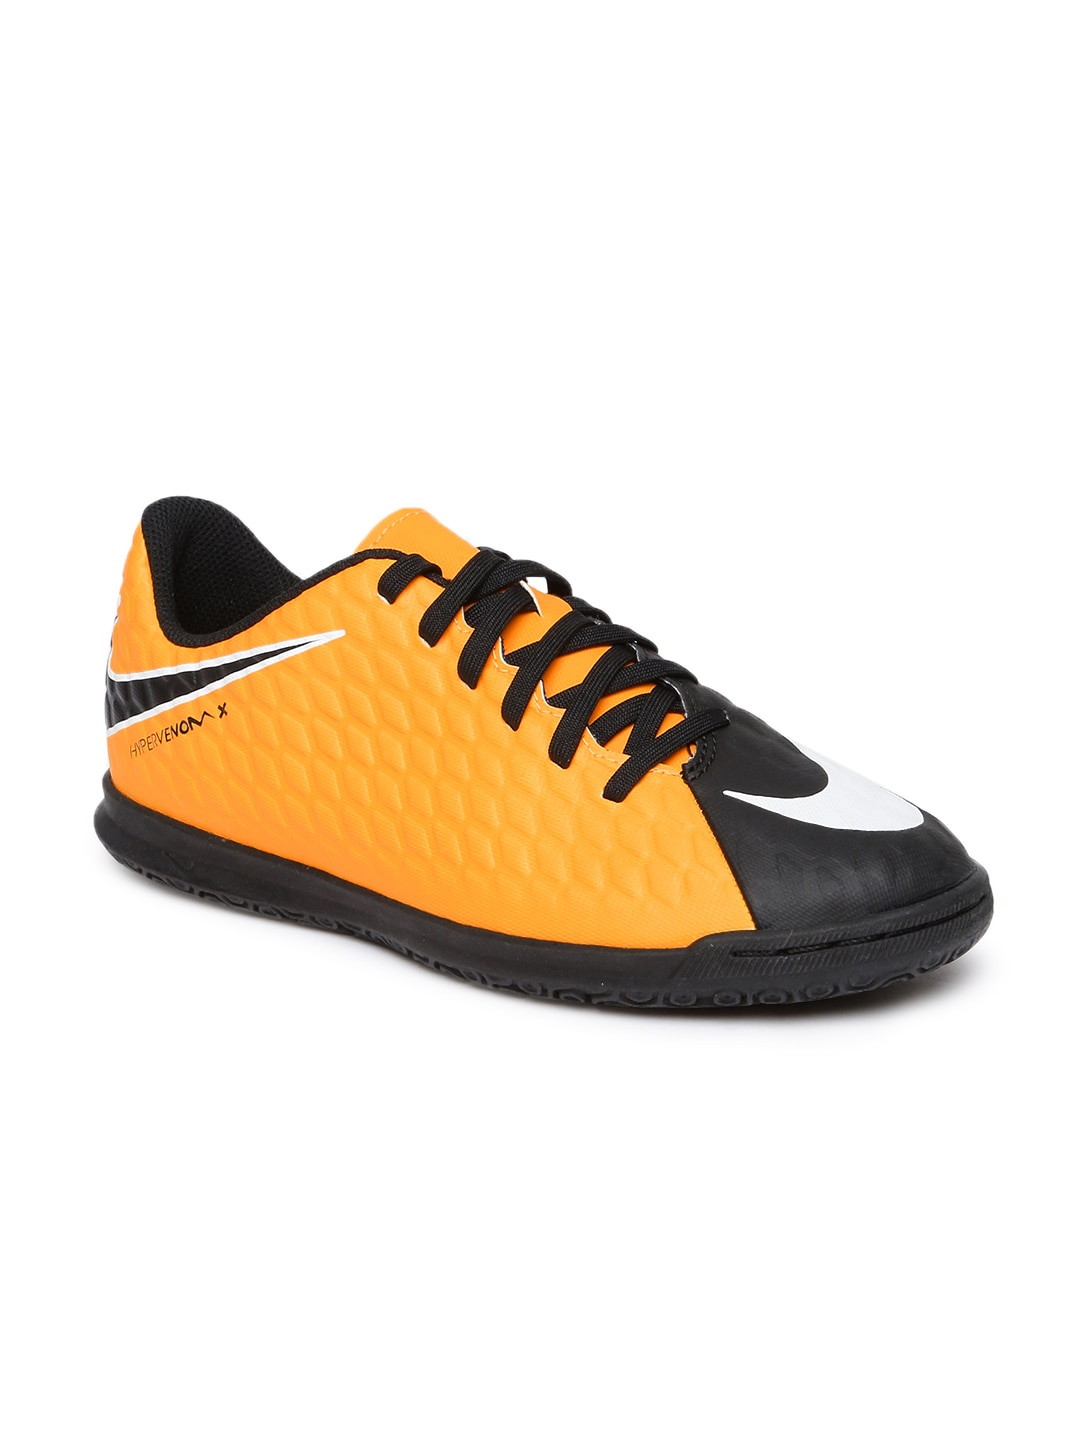 9e75dc92200ec3 Football Shoes - Buy Football Studs Online for Men   Women in India